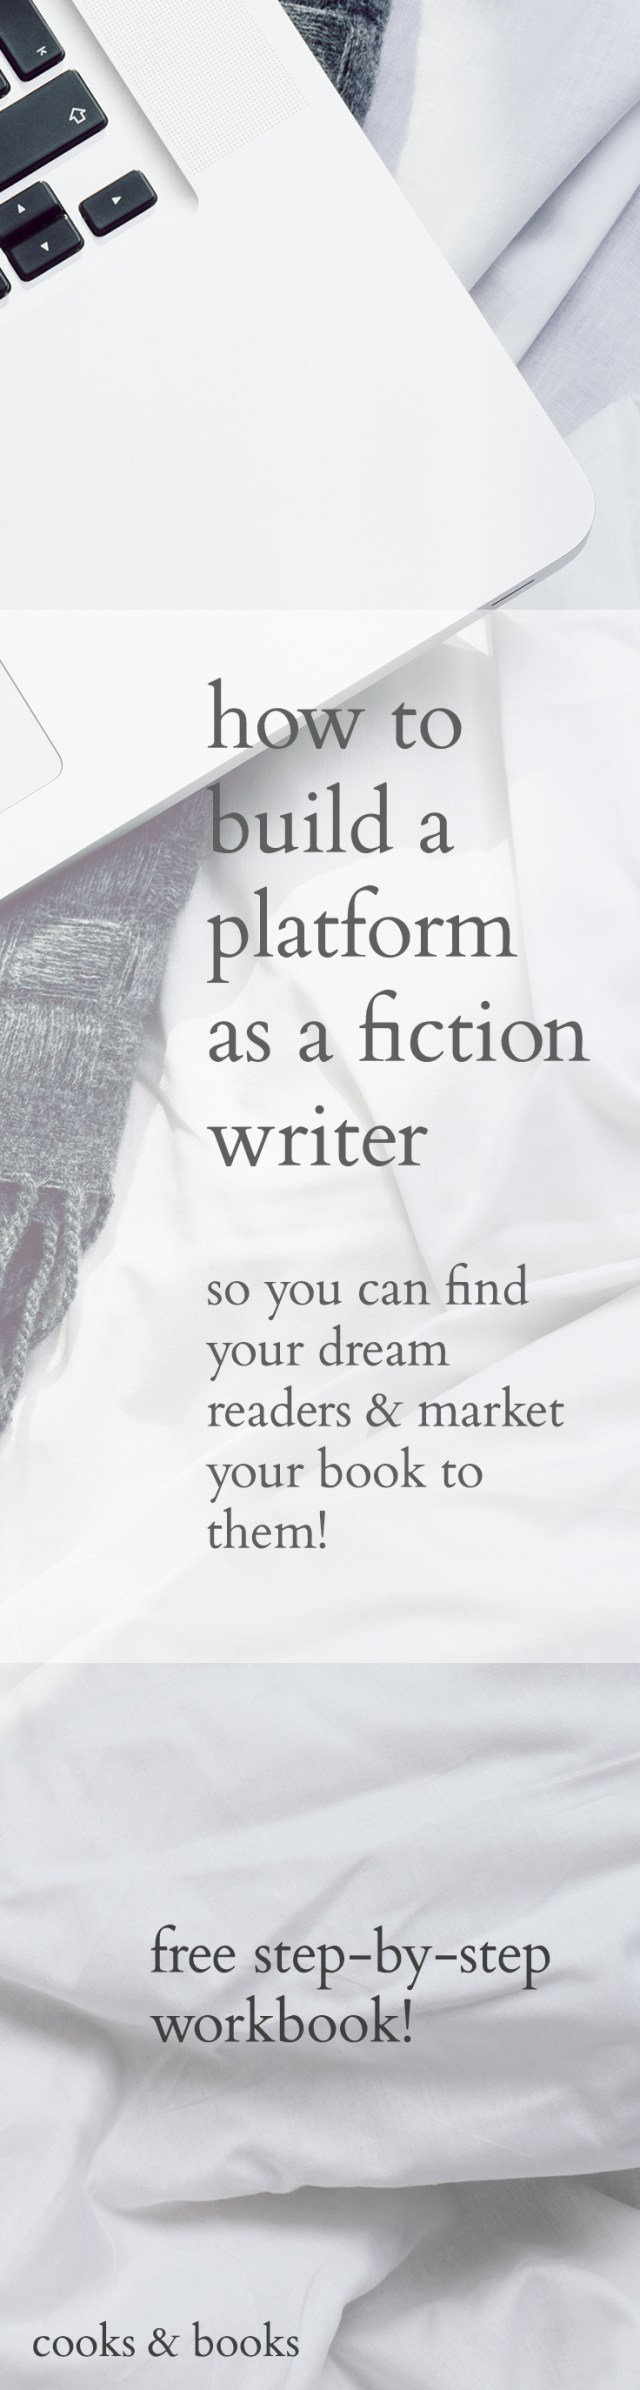 How to build a platform as a fiction writer (long)